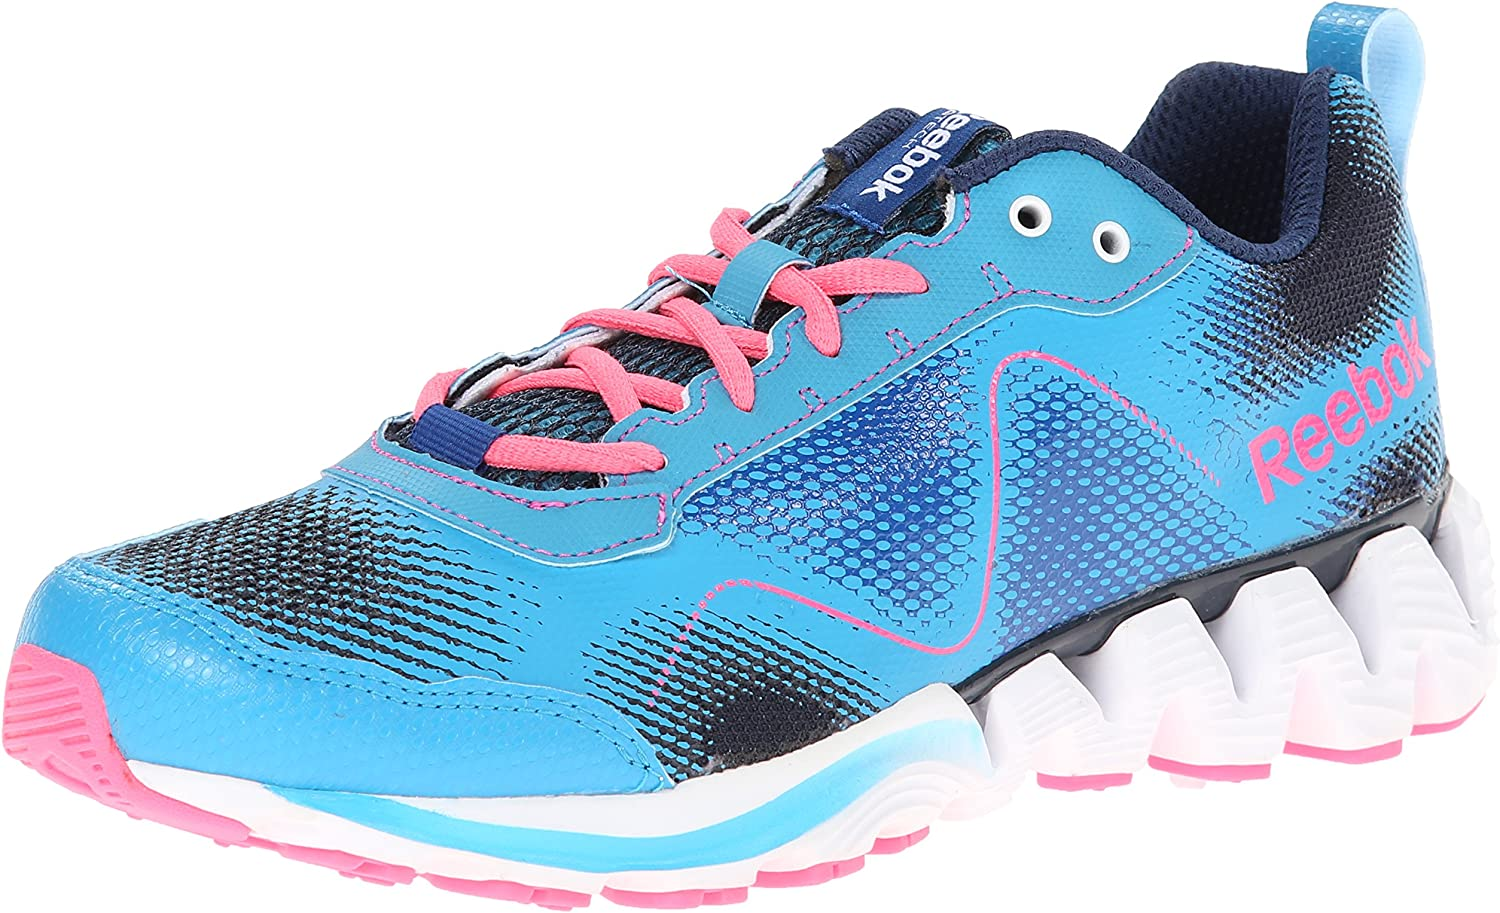 Reebok Women s Zigkick Wild Trail Running Shoe